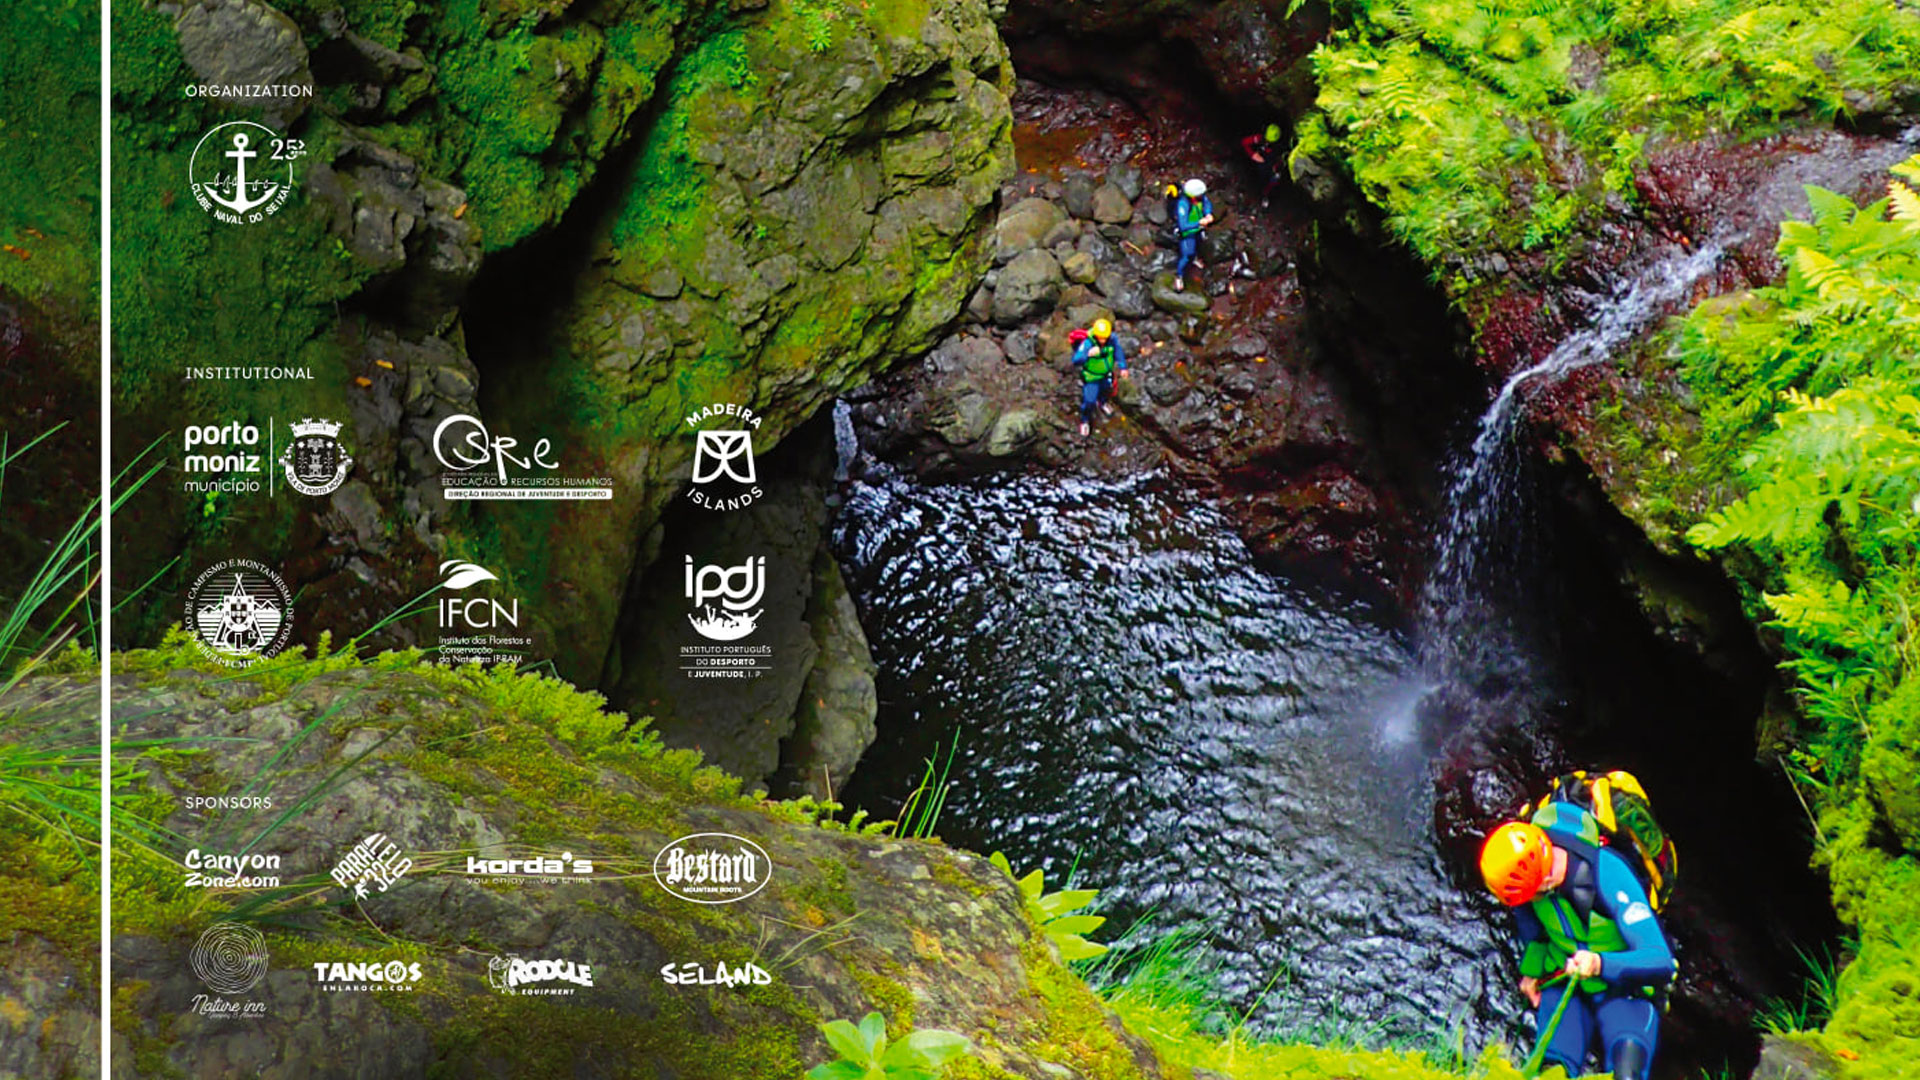 Madeira canyoning meeting 2021 logos of organisers and sponsors